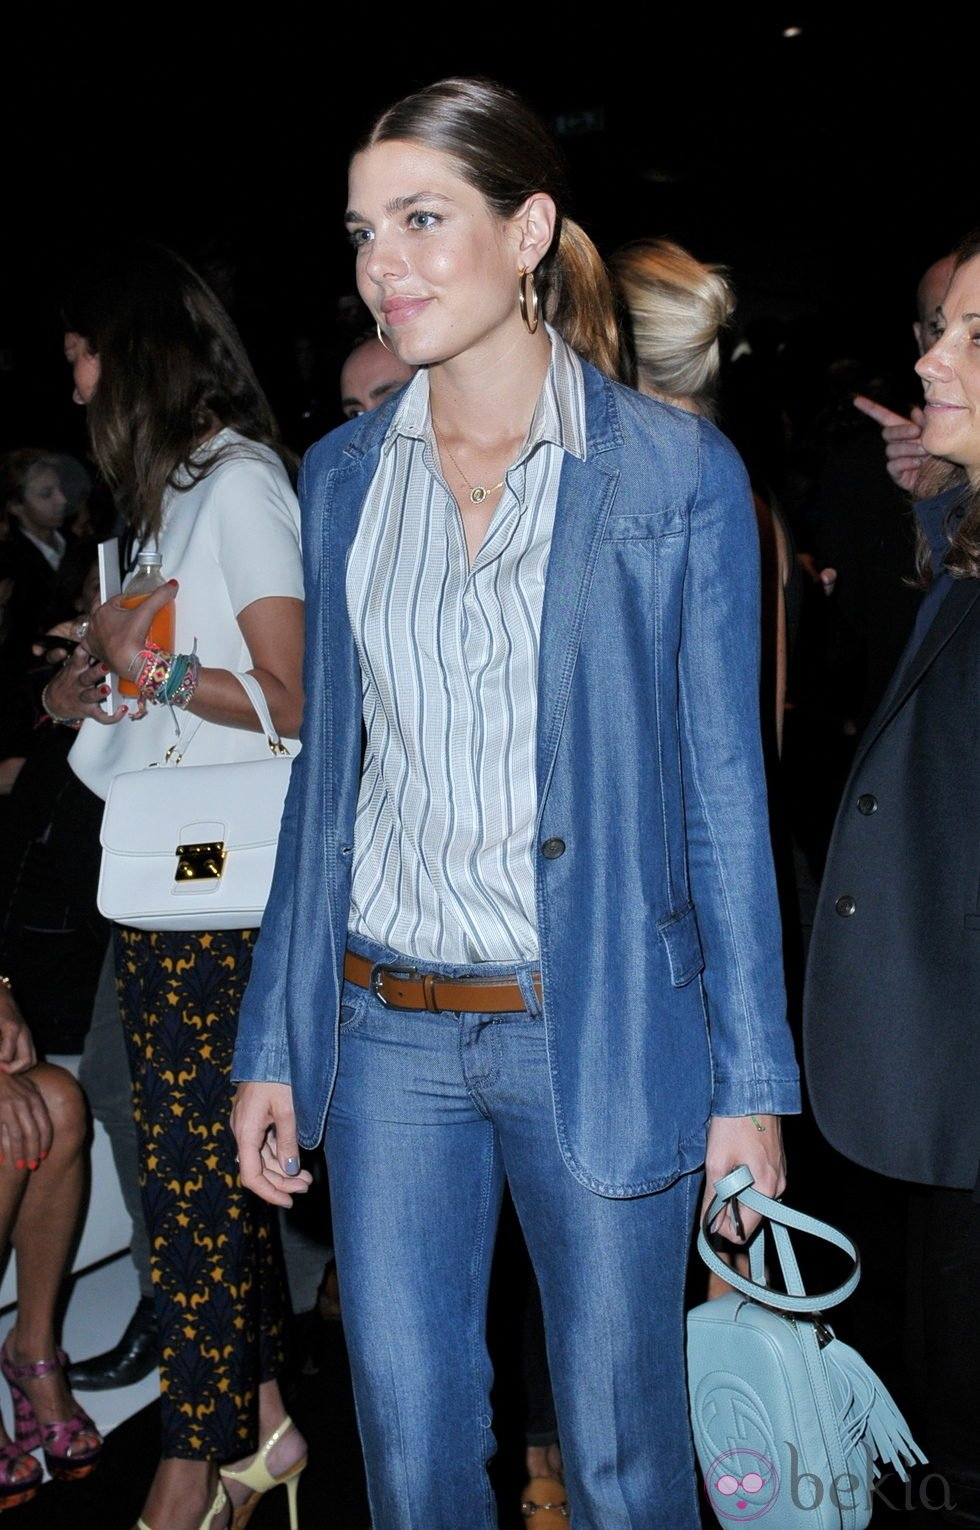 Charlotte Casiraghi on blue jeans